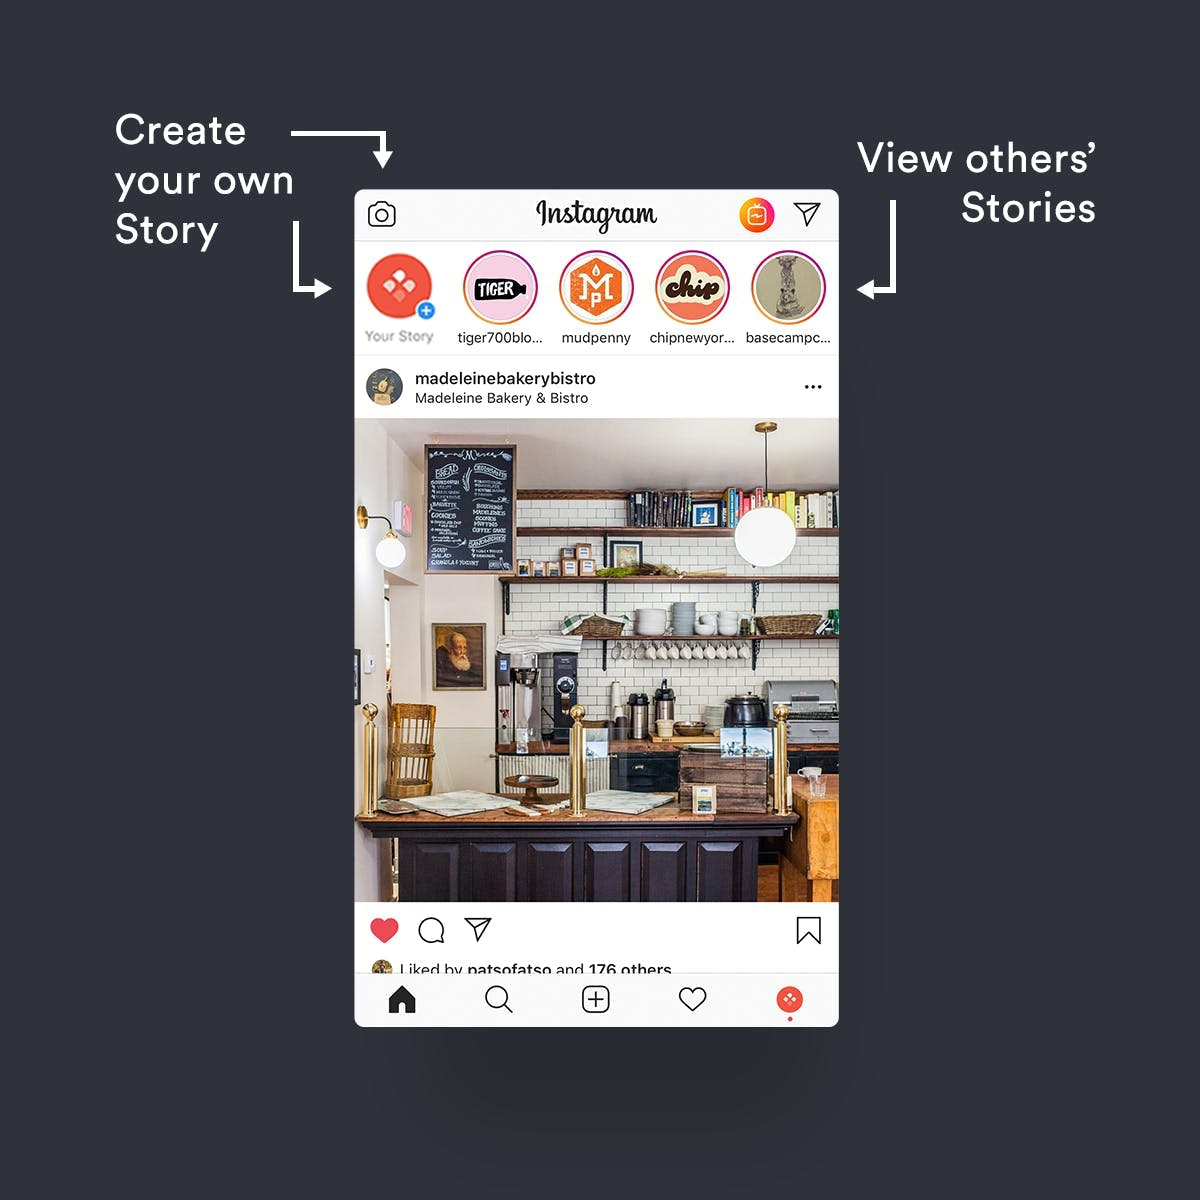 Where to create your own Stories or view others' Stories on your Instagram feed.